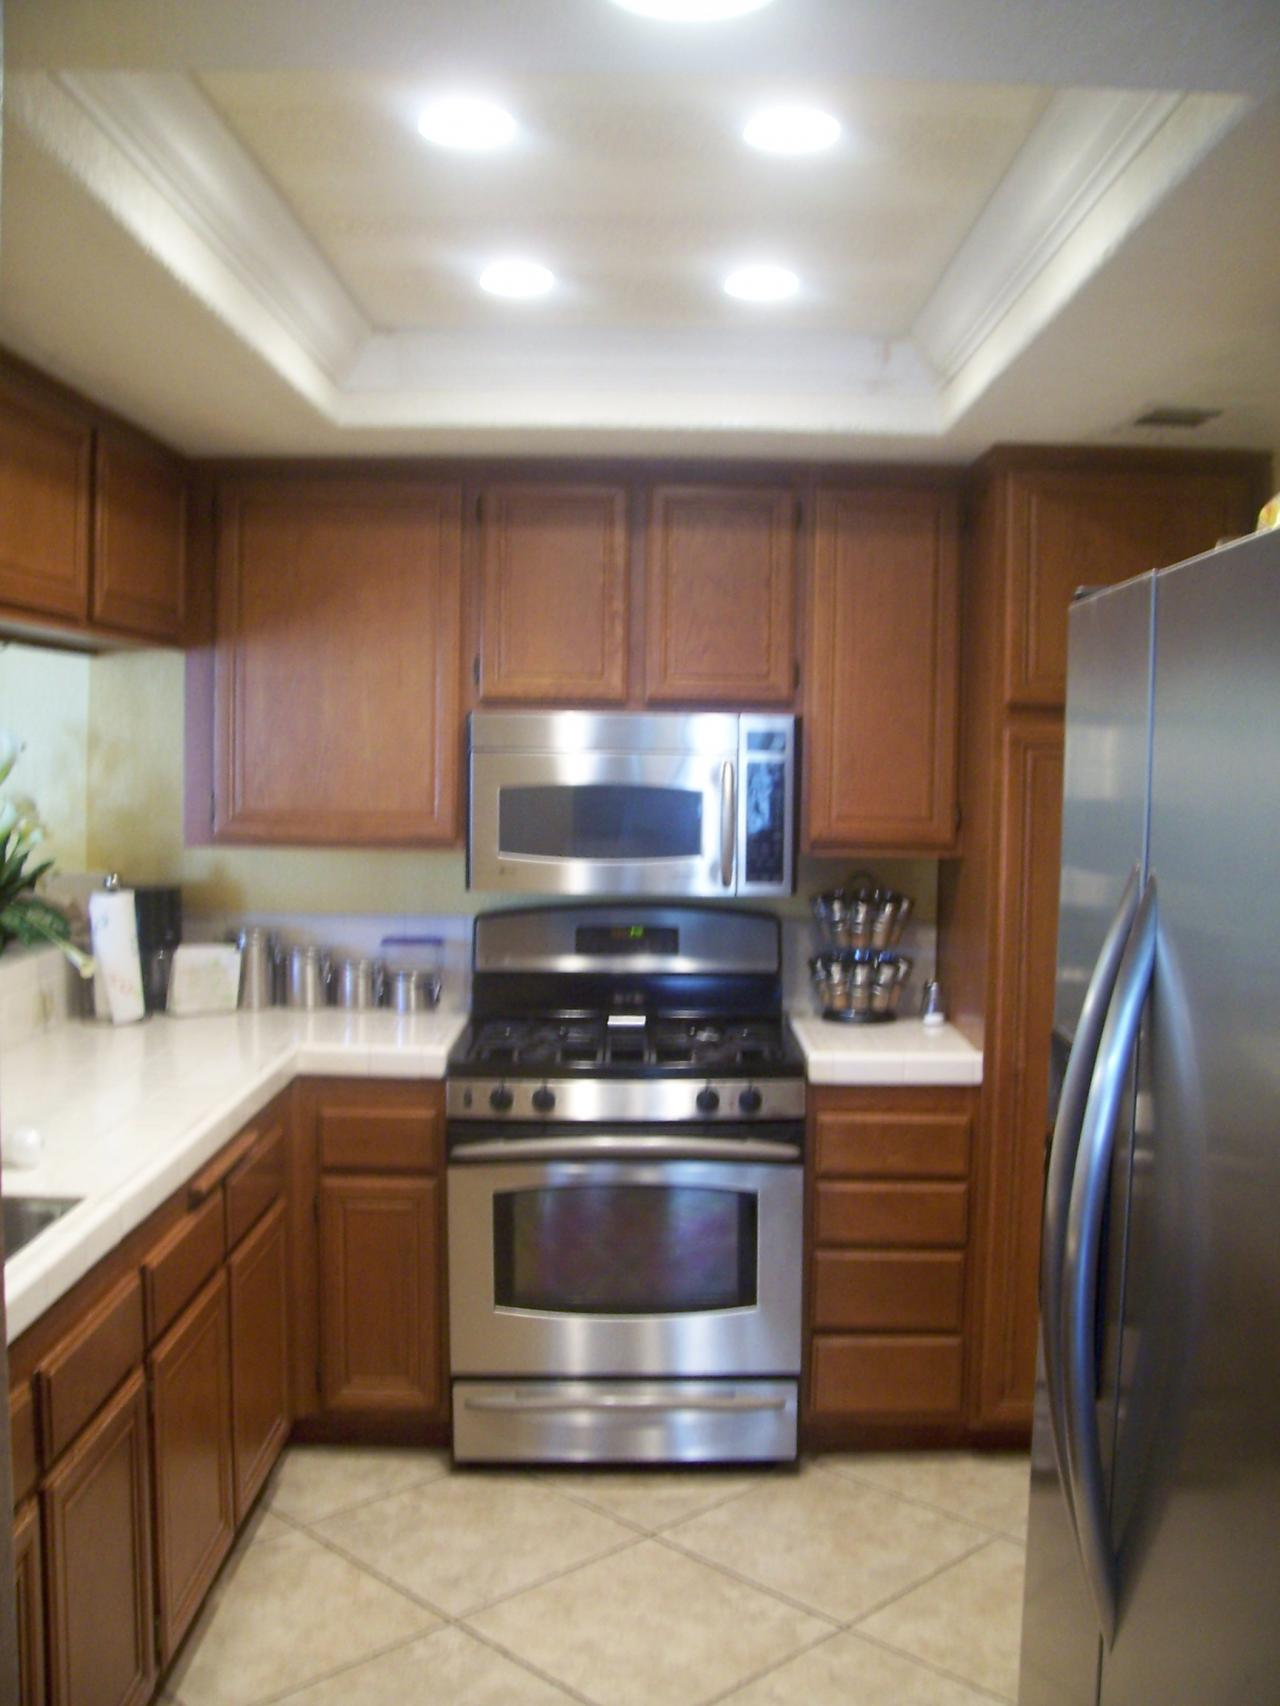 interior can light recessed quality kitchen recessed lighting on small kitchen corner wood cabinet design ideas indoor lighting led recessed light ideas